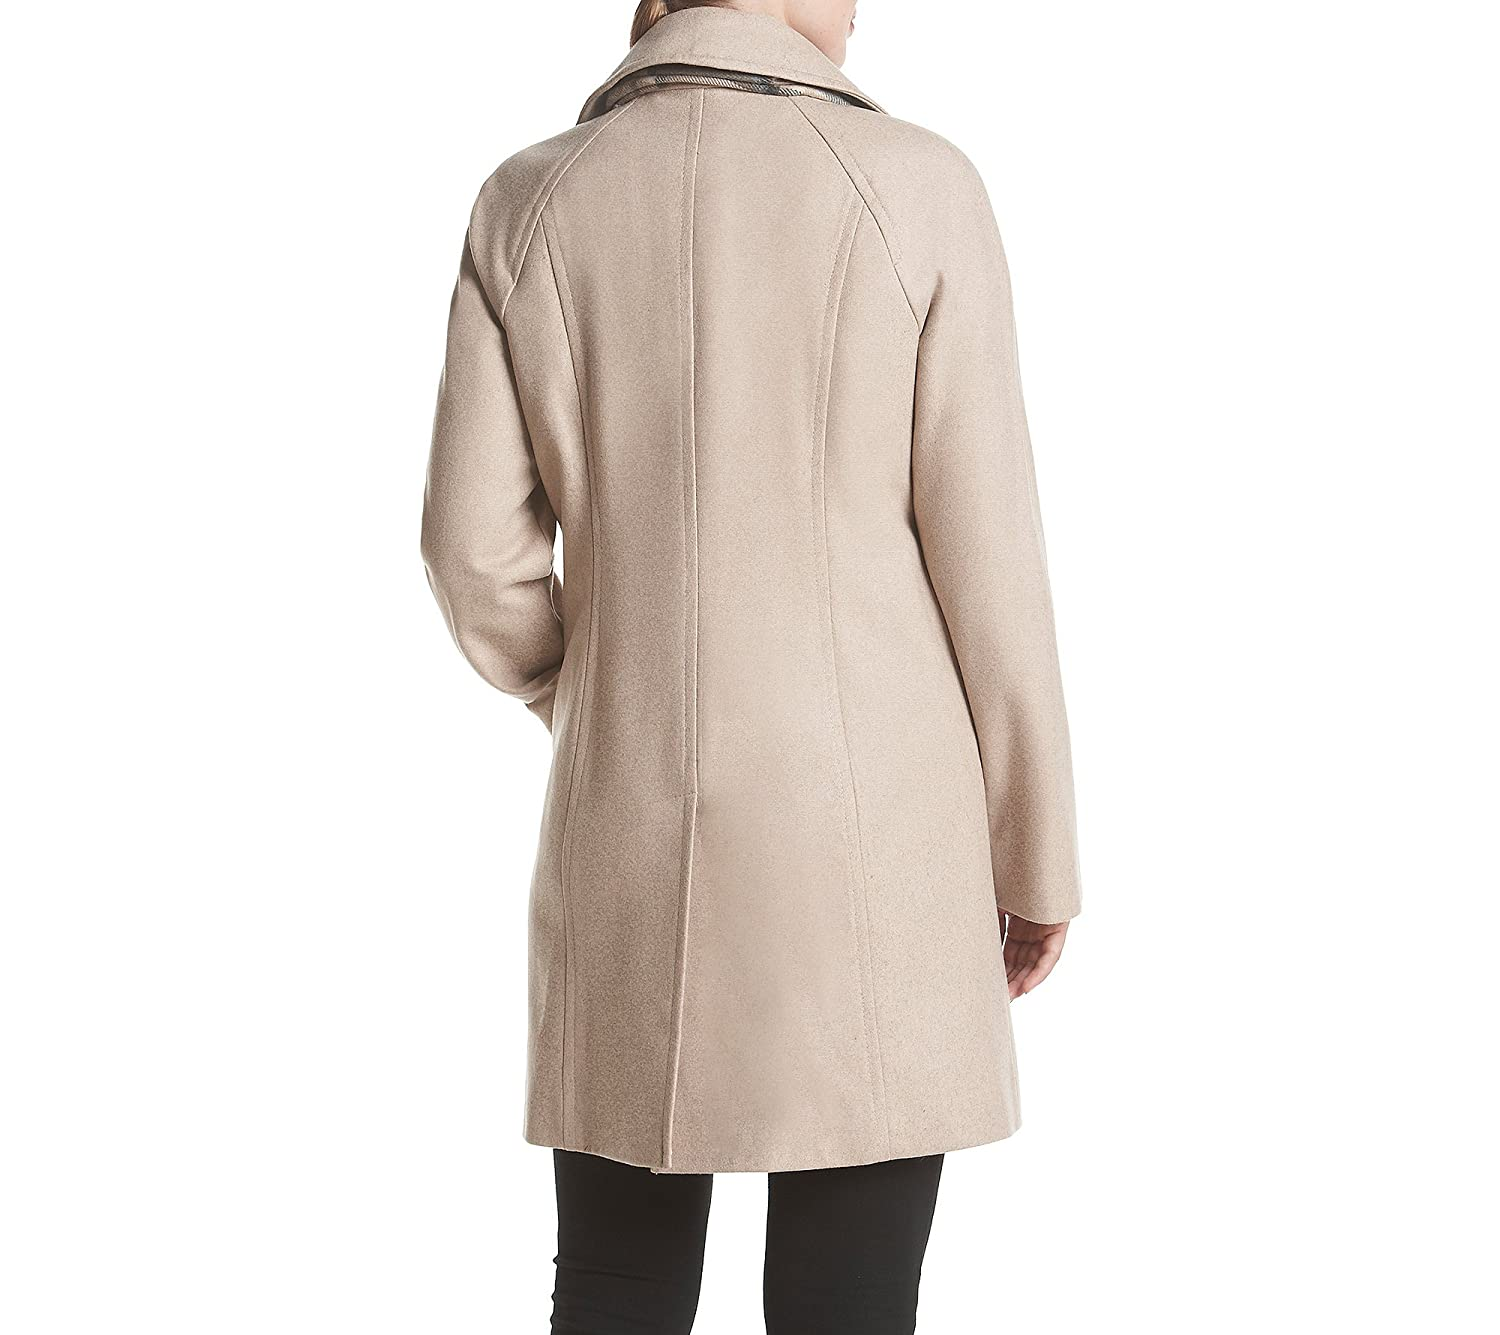 London Fog Petites' Raglan Peacoat